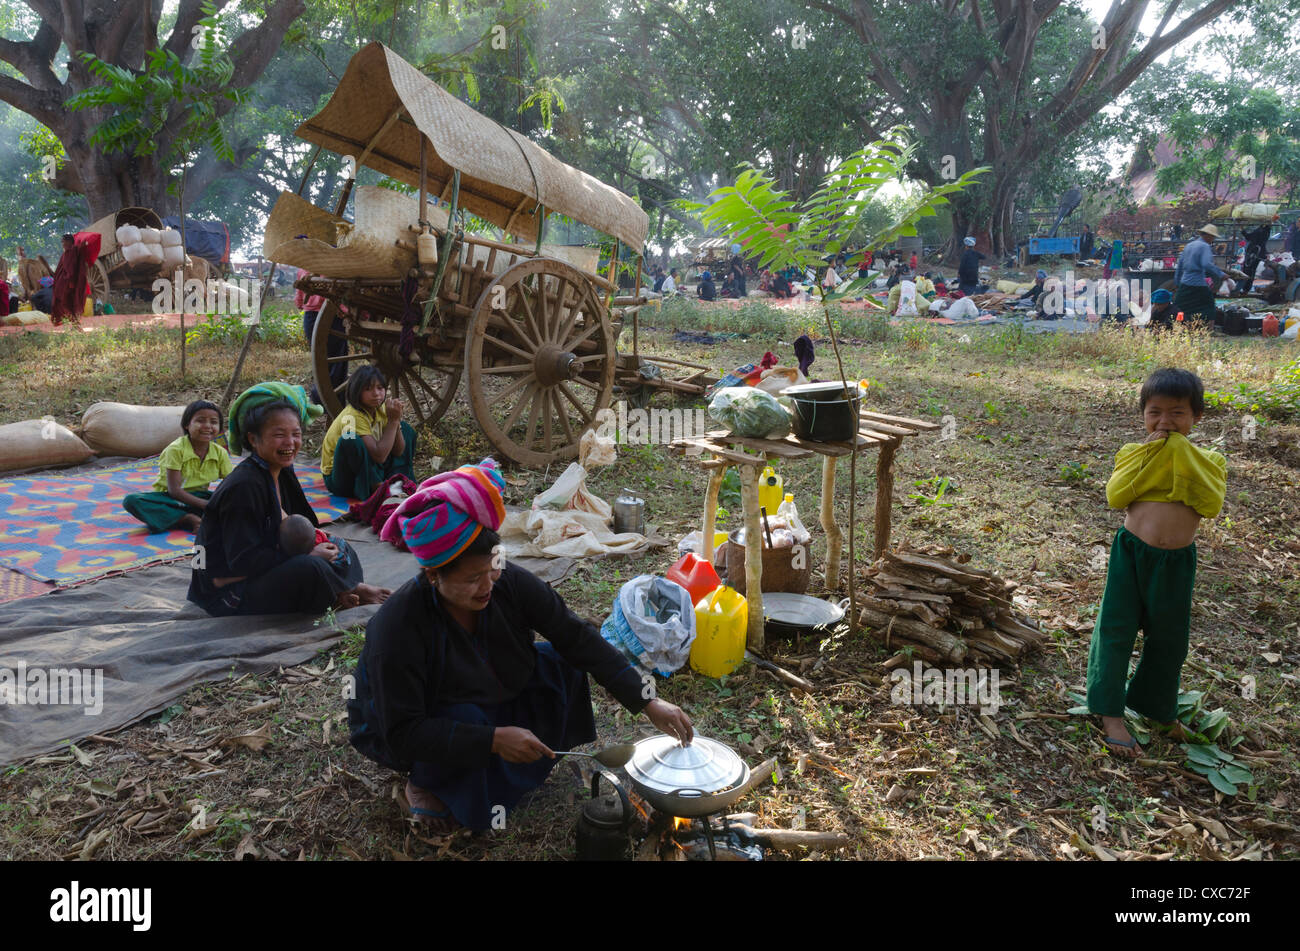 Pa Oh minority women and children cooking next to their bull cart, Kakku festival, Shan State, Myanmar (Burma), - Stock Image